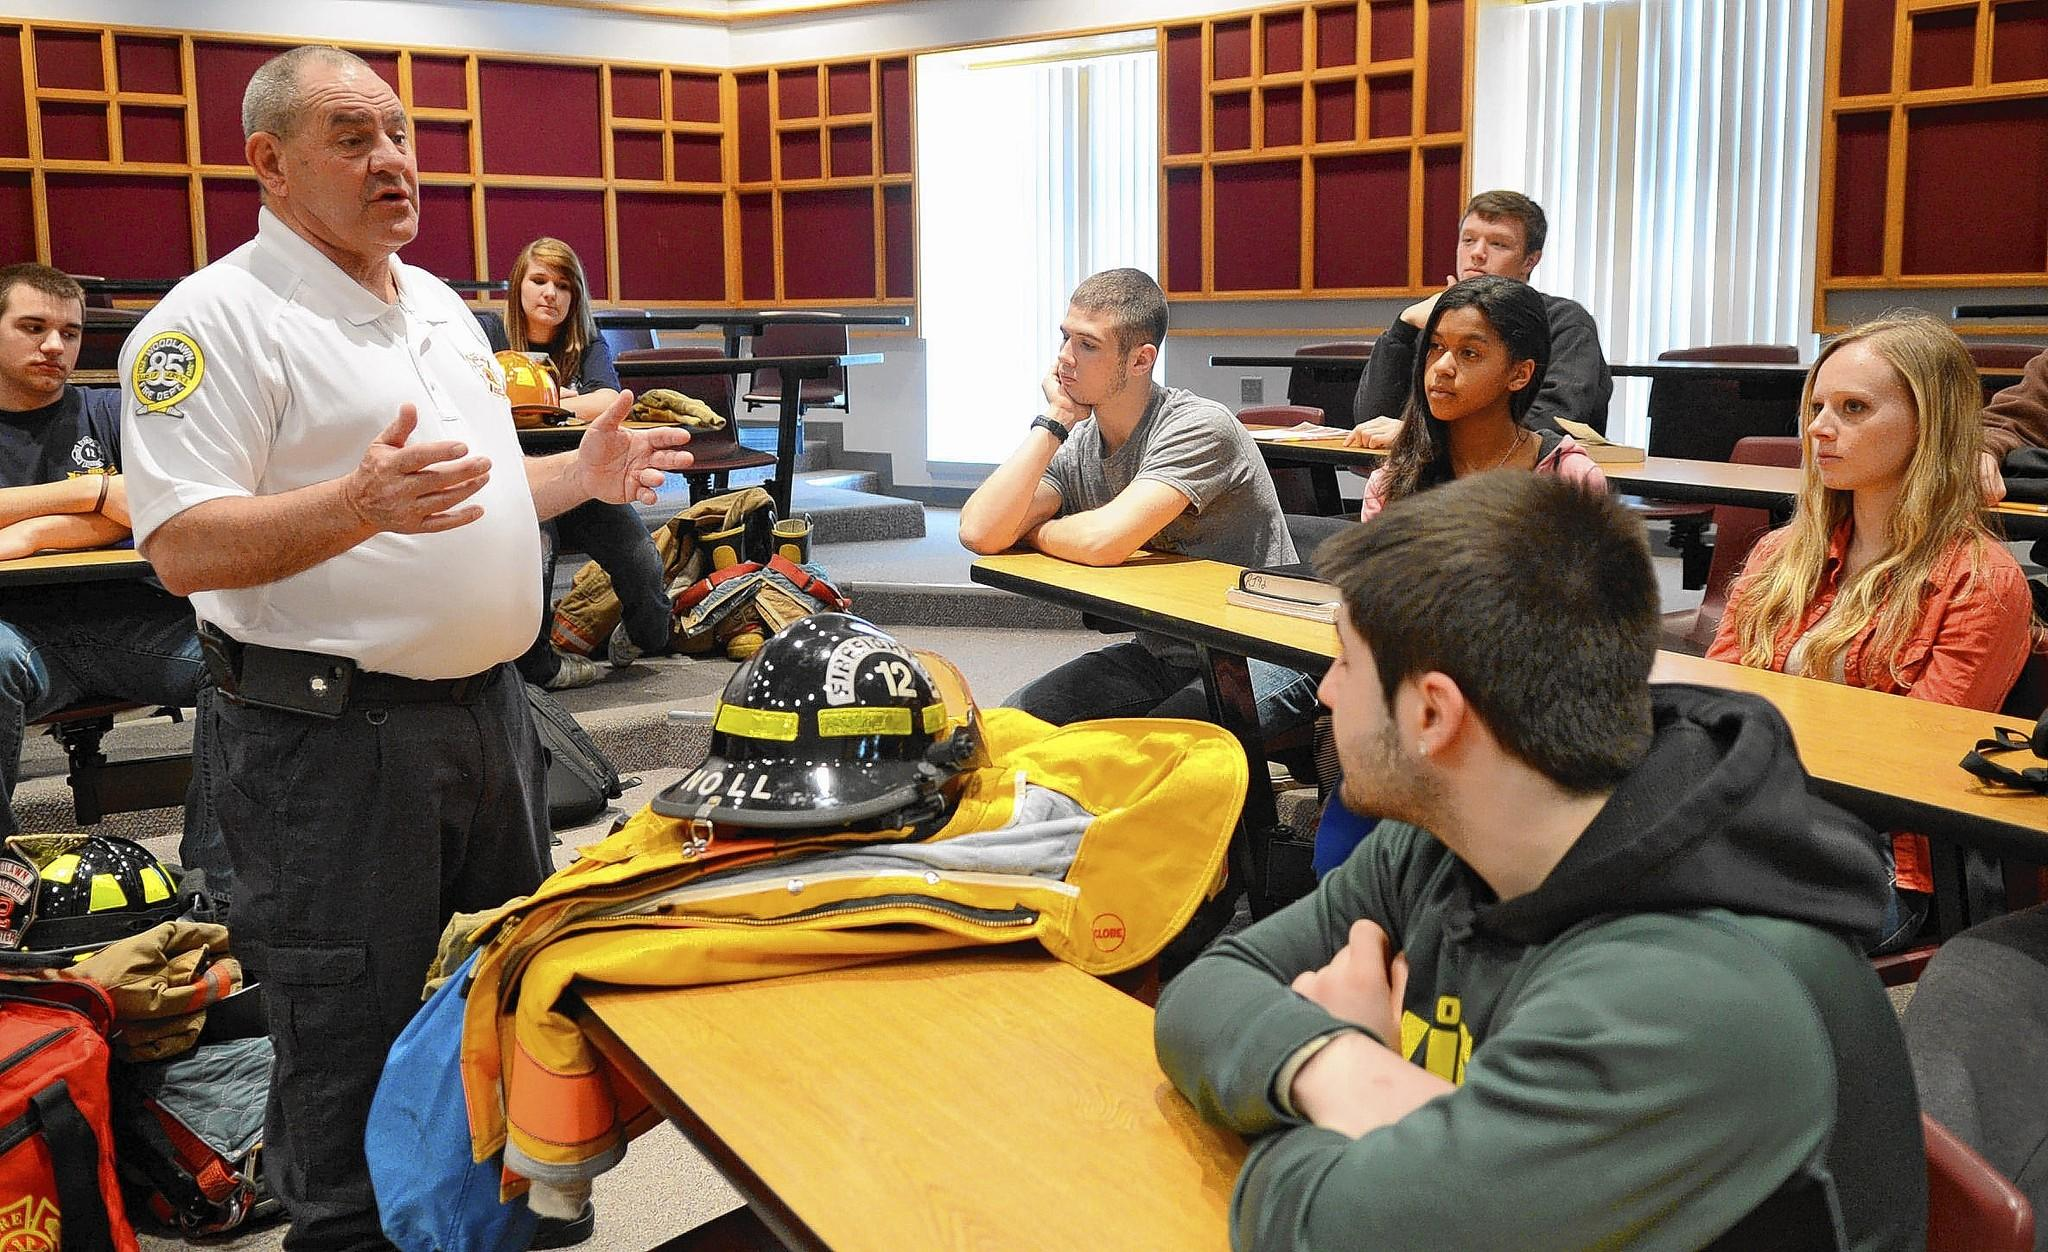 Retired teacher and firefighter Barry Search talks to students in Parkland High School's Science of Firefighting class. Search started the class in 1999, but it was eventually halted due to a lack of interest. This school year, he returned to help start it up again.